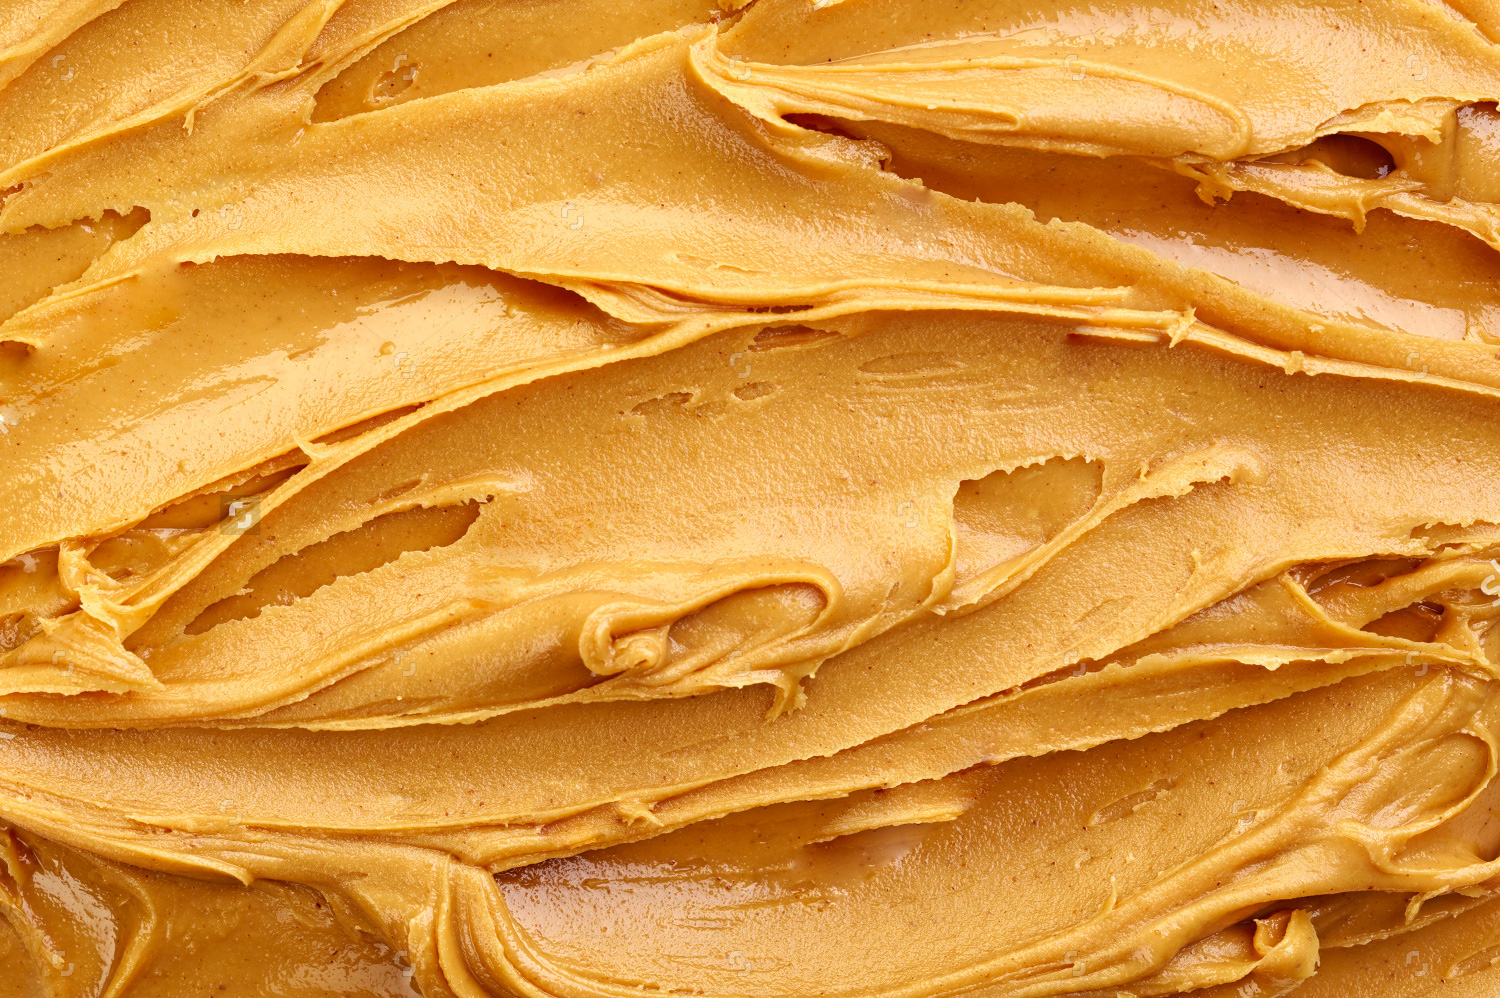 stock-photo-peanut-butter-background-top-view-270746819